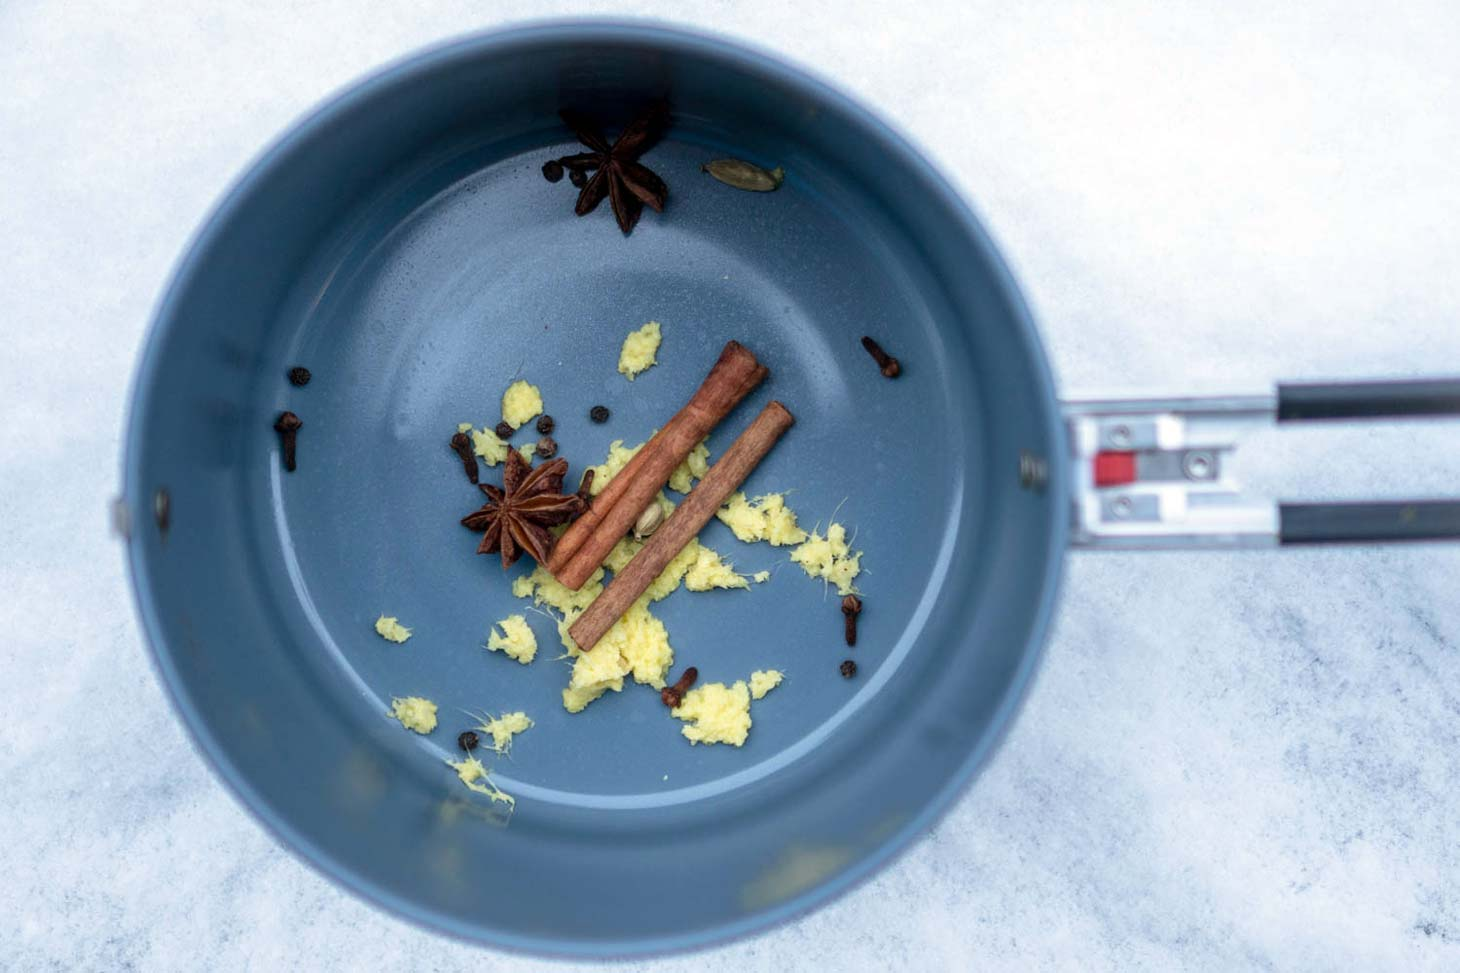 Ginger, cinnamon sticks, cloves, and star anise in a pot